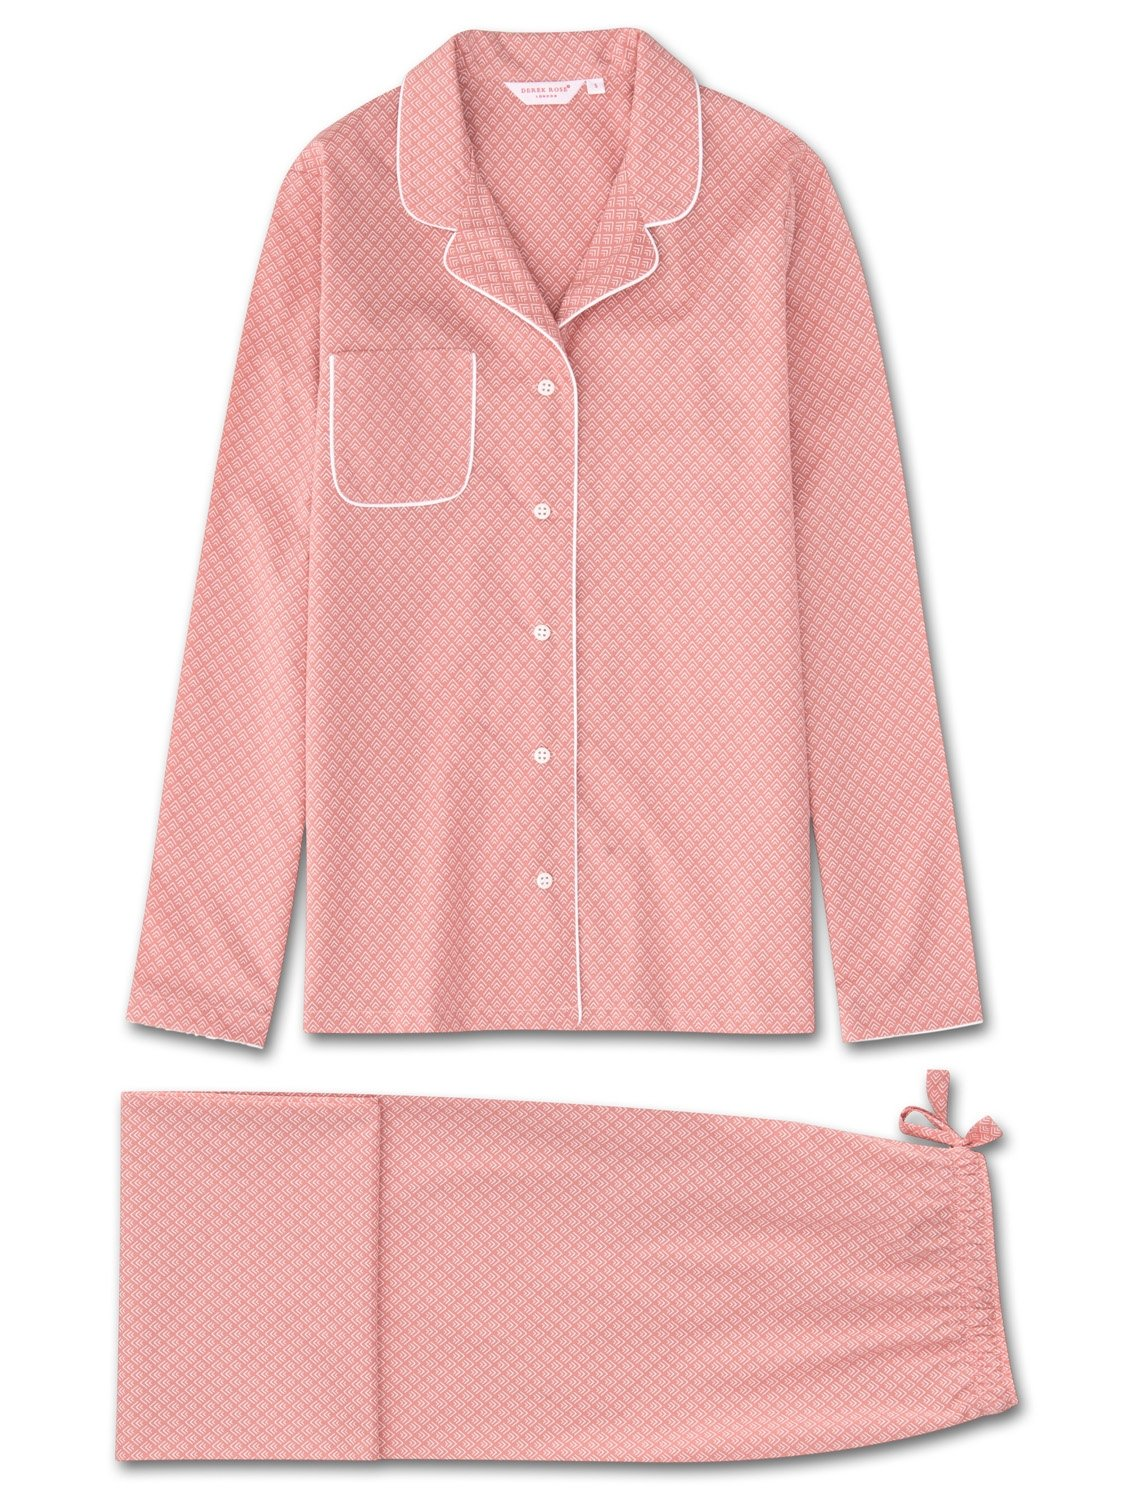 Women's Pyjamas Nelson 66 Cotton Batiste Pink